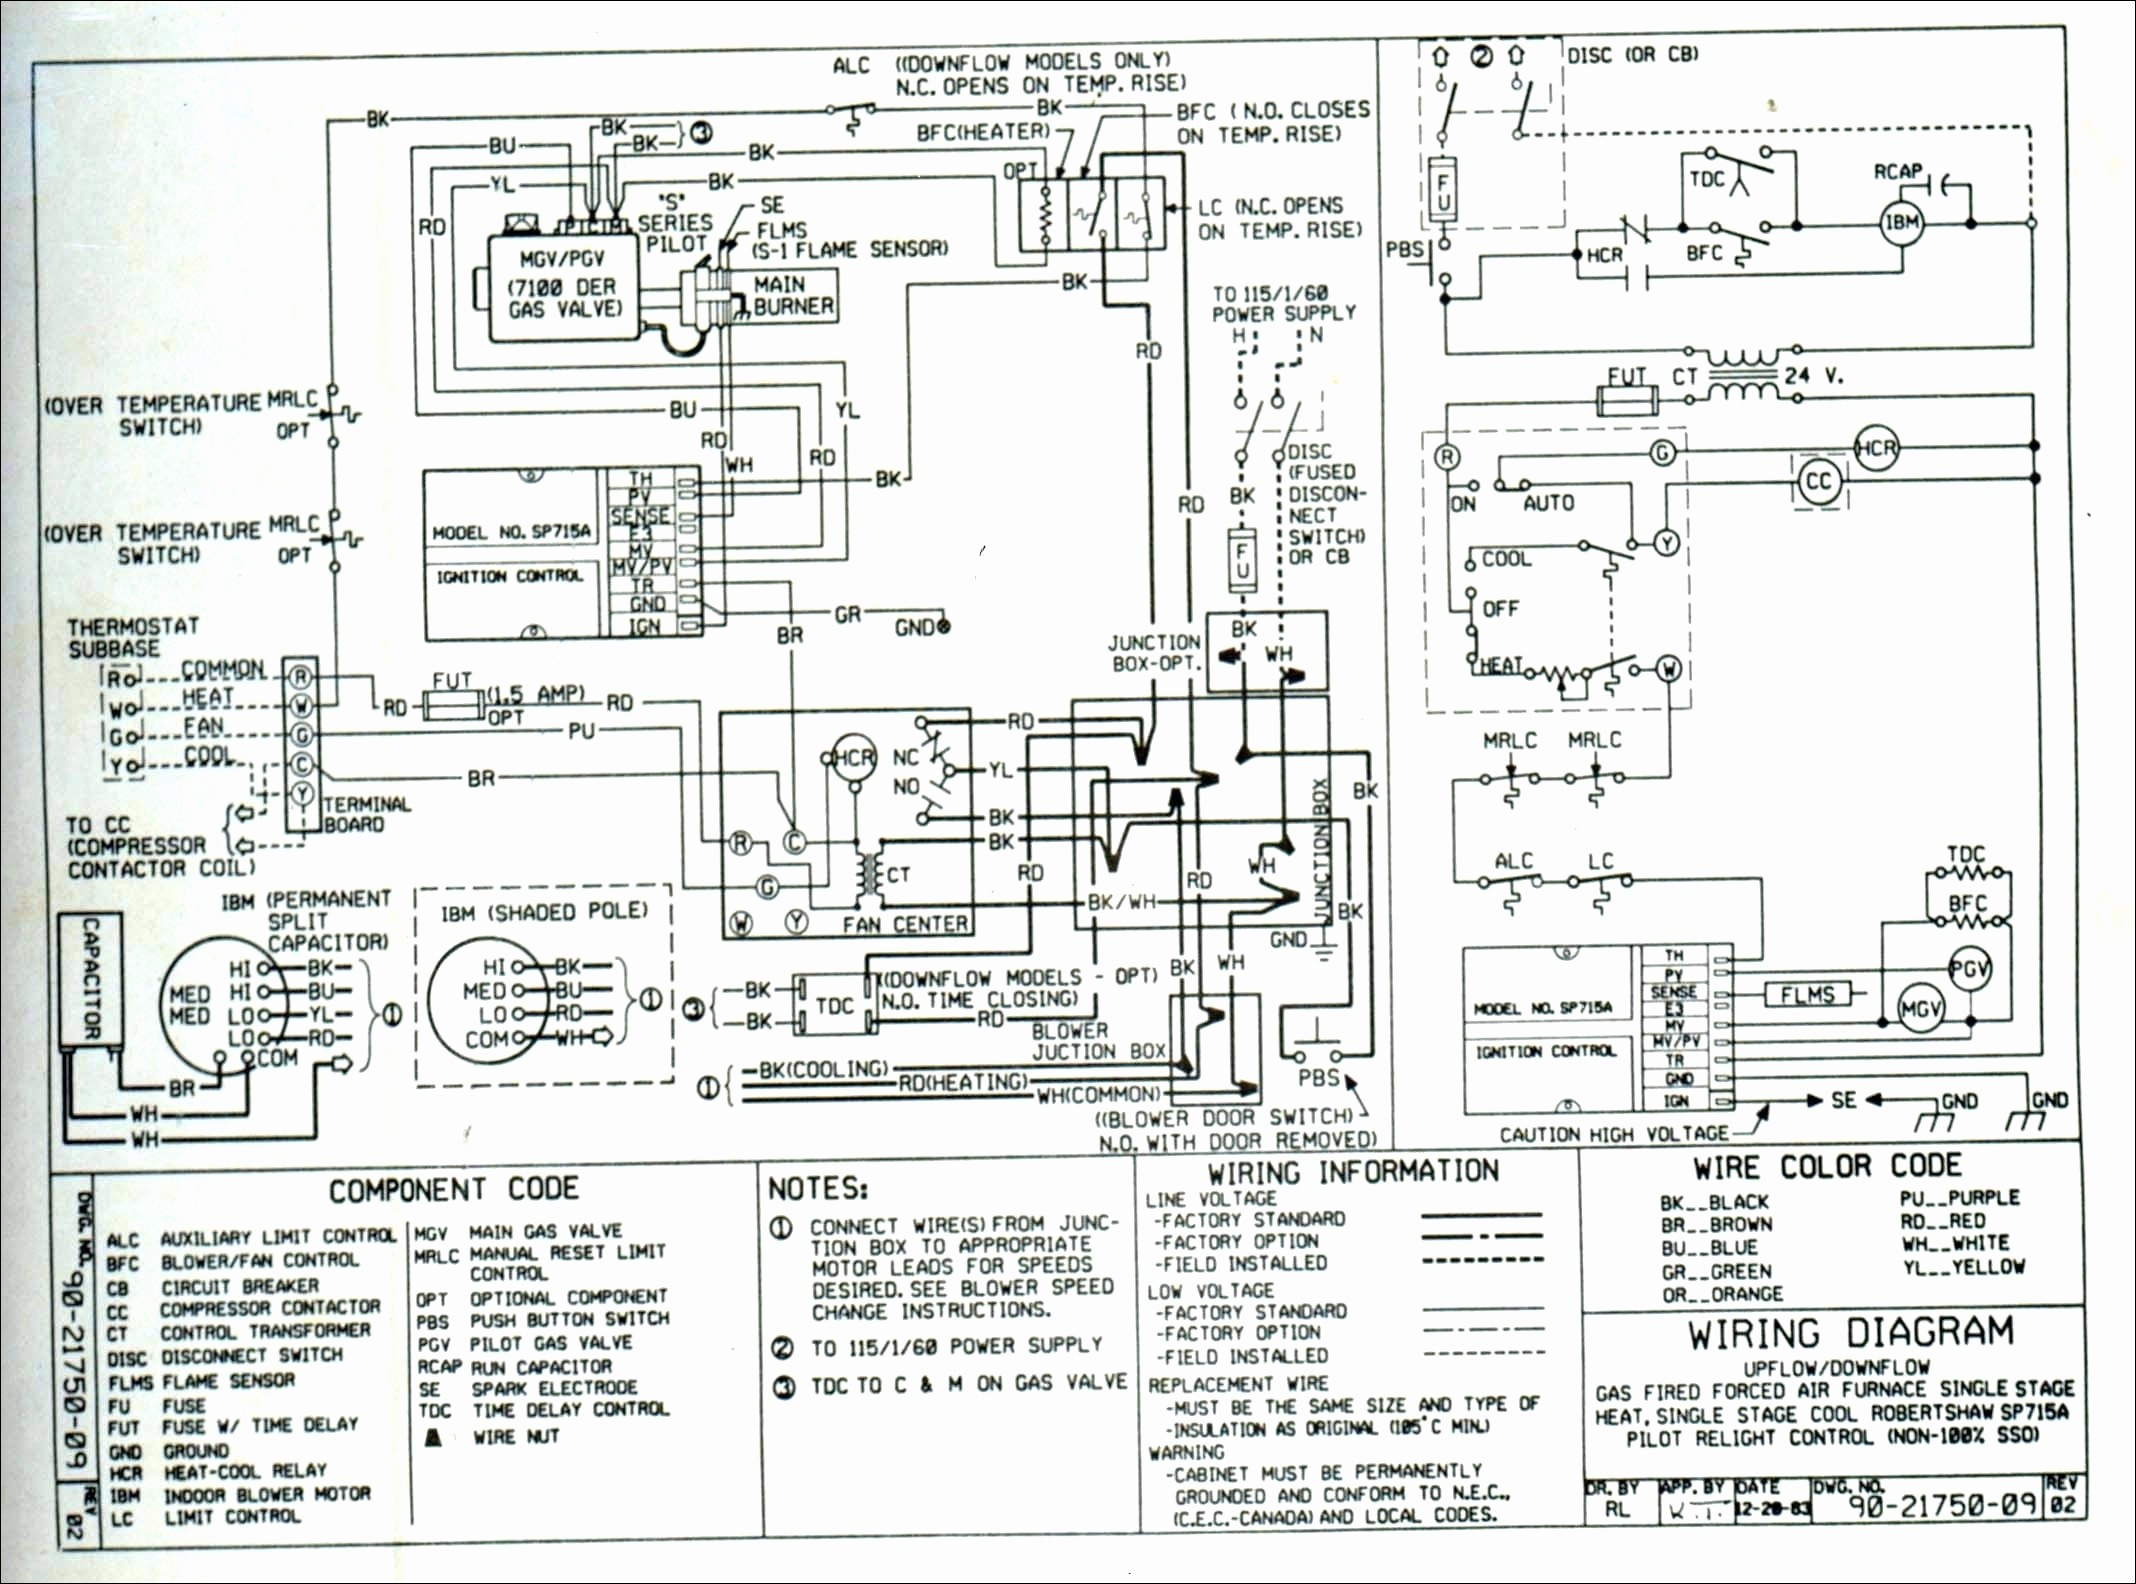 Heat Strip Wiring Diagram from 2020cadillac.com